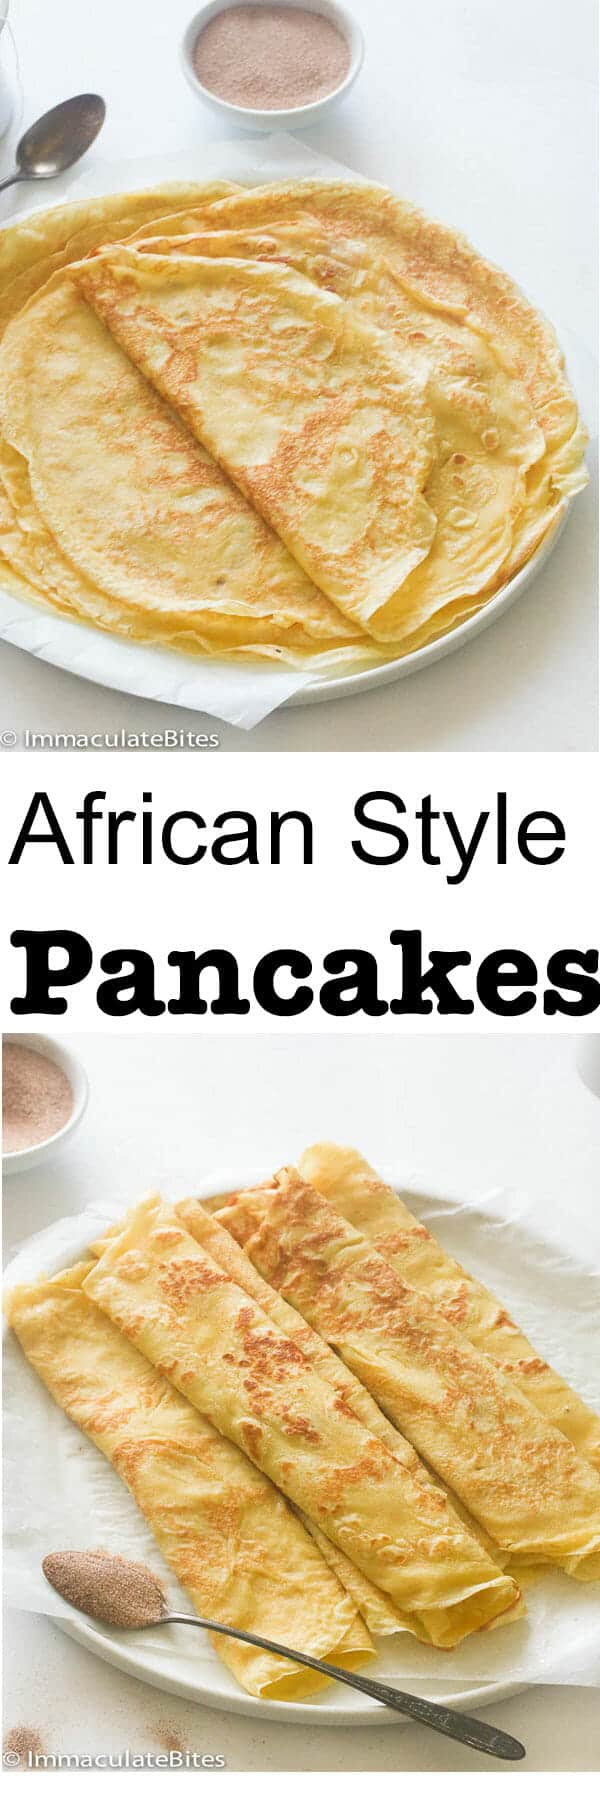 African pancakes/crepes